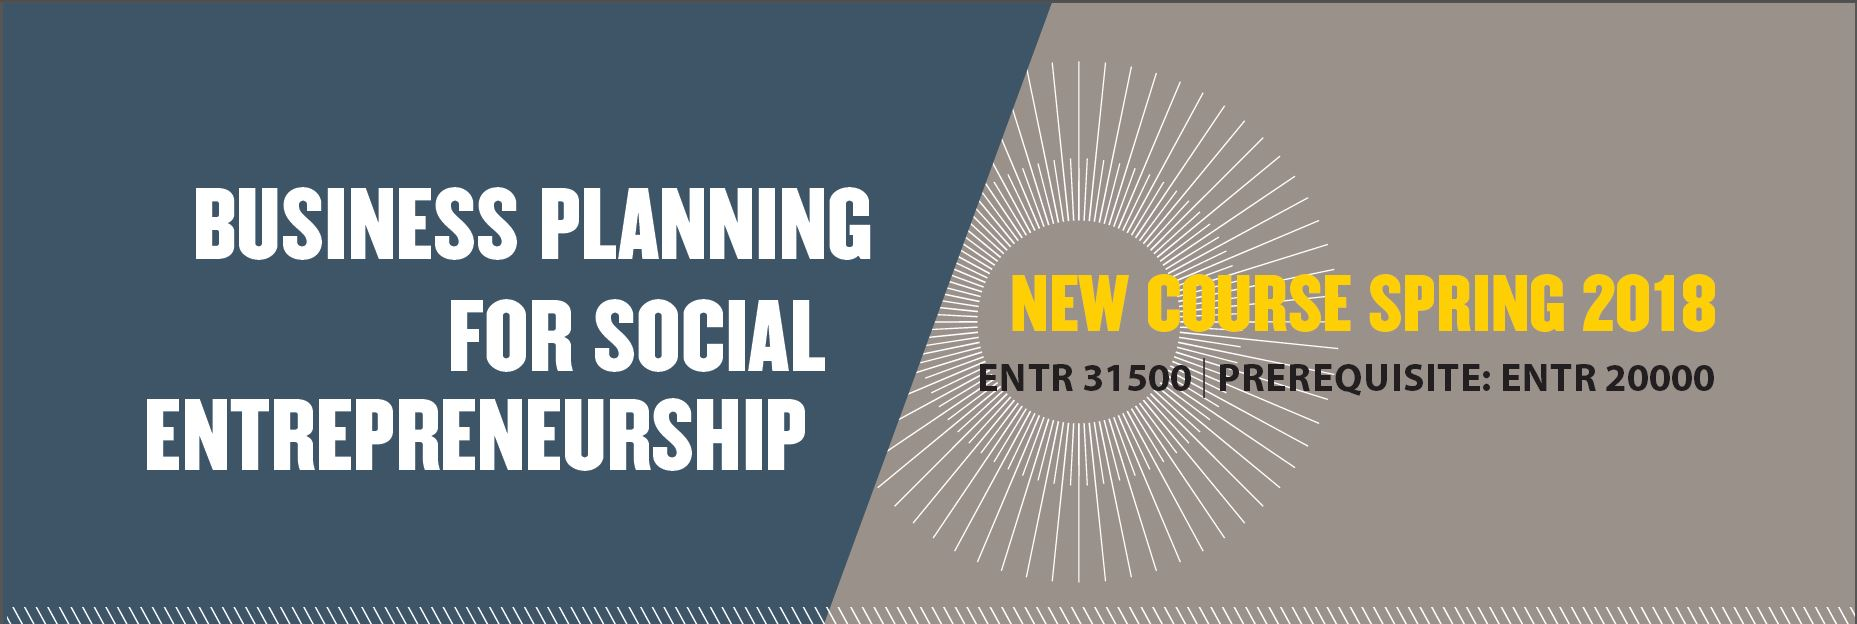 ENTR 31500 New Course Offering - Social